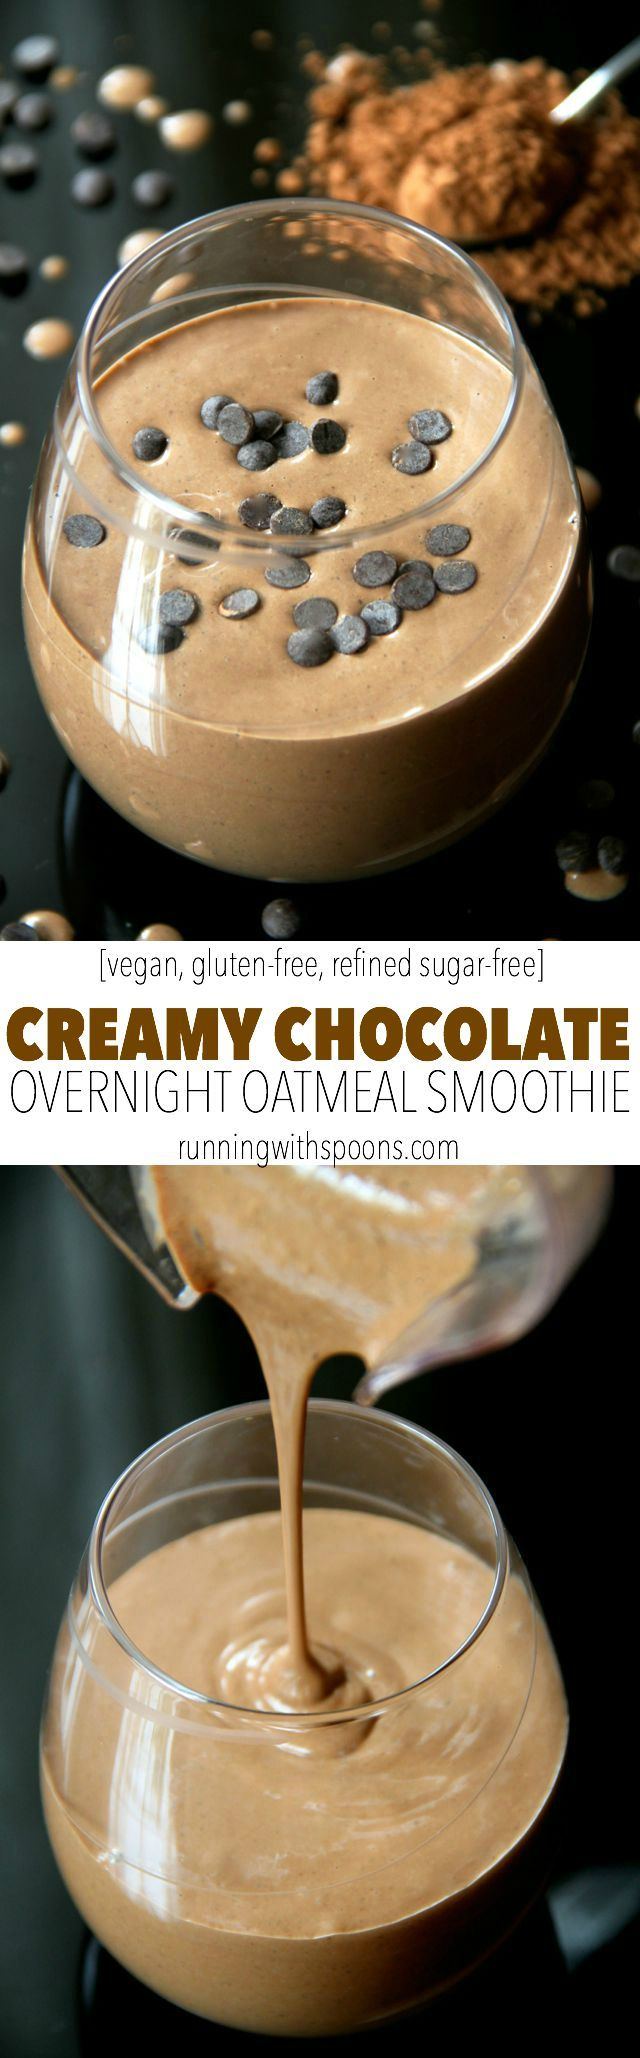 Chocolate Overnight Oatmeal Smoothie -- This vegan smoothie will knock out those chocolate cravings while providing you with a balanced breakfast or snack || runningwithspoons.com #vegan #healthy